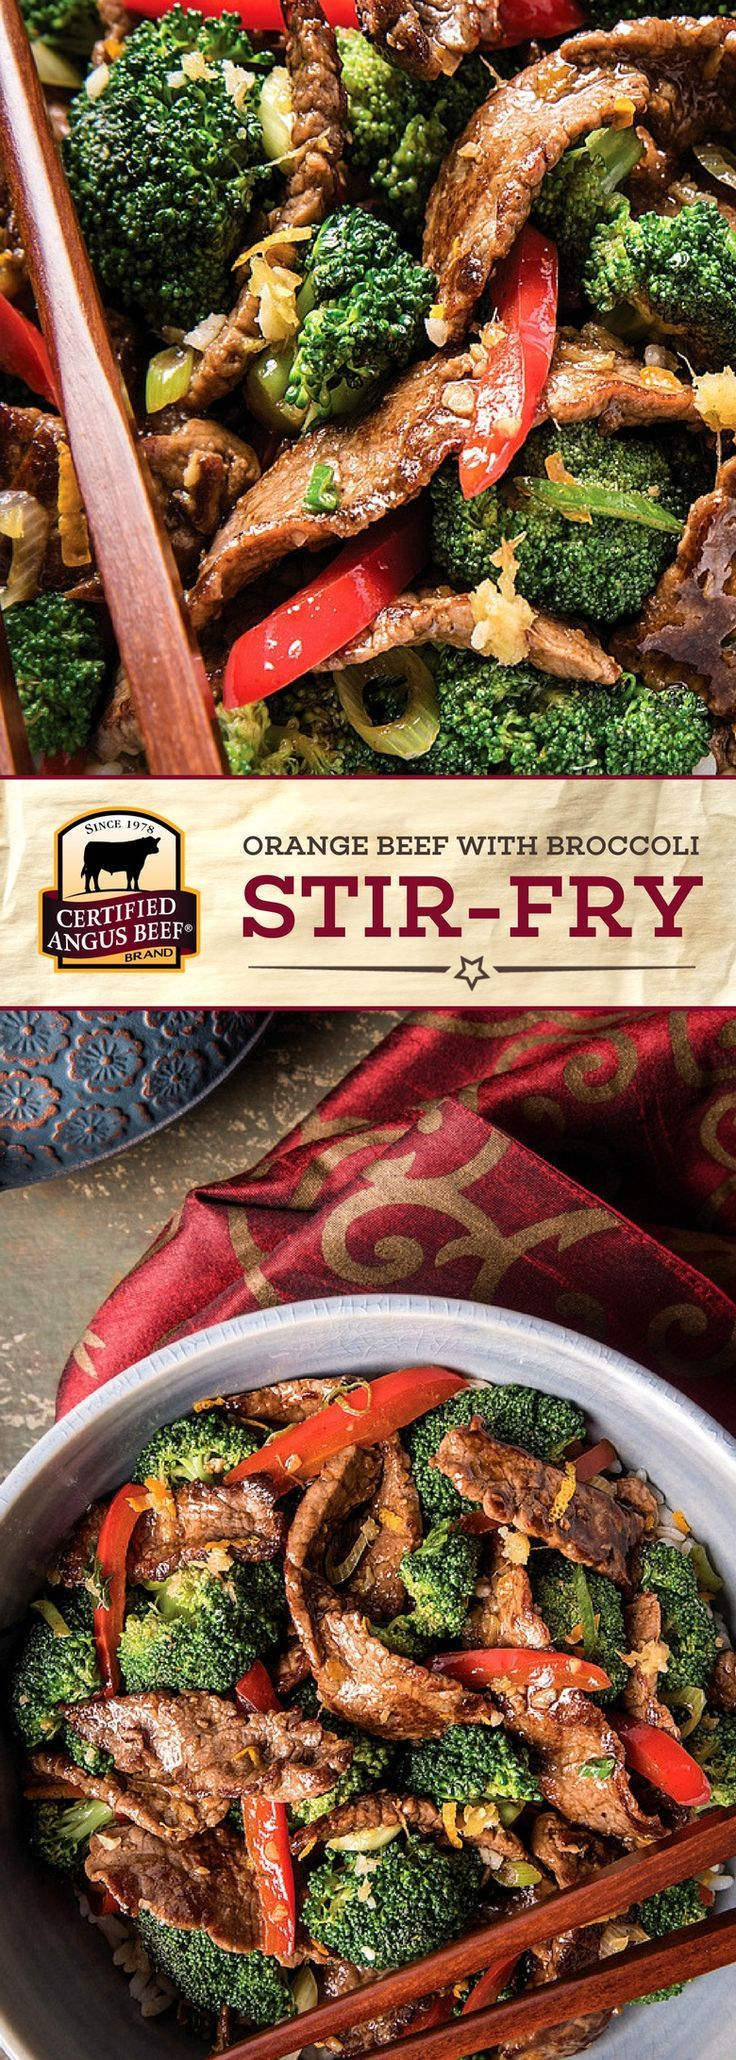 Certified Angus Beef®️️️️️️️ brand Orange Beef with Broccoli Stir-fry is a MUST TRY recipe! The best bottom round steak is cooked with bell peppers, green onions, garlic and ginger for strong flavors, and is finished with a DELICIOUS orange sauce.